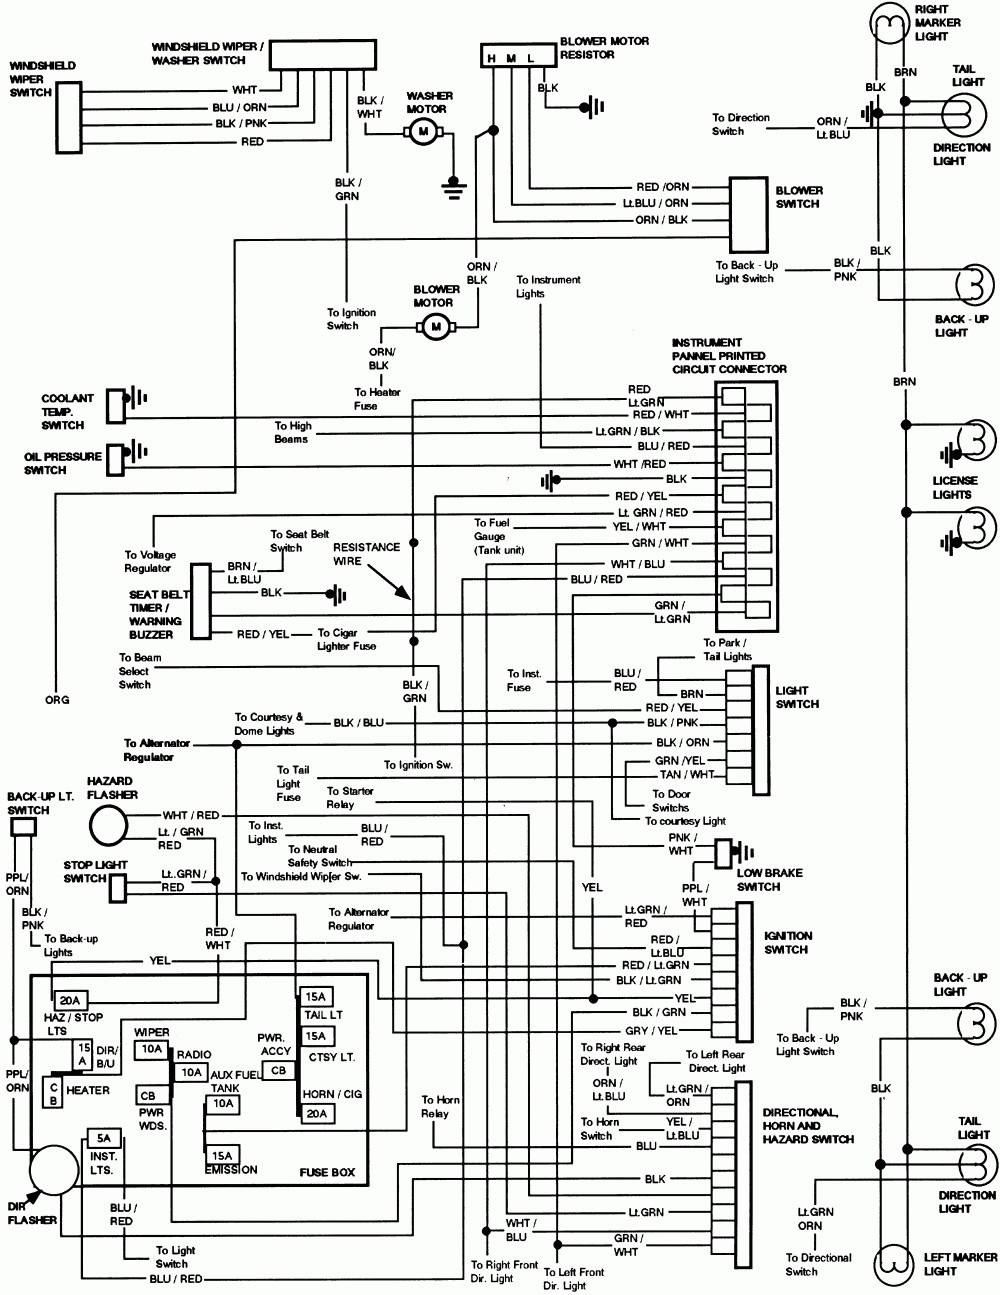 medium resolution of 86 ford f 150 engine schematics wiring diagram hub 2003 ford f 150 schematics 1985 f150